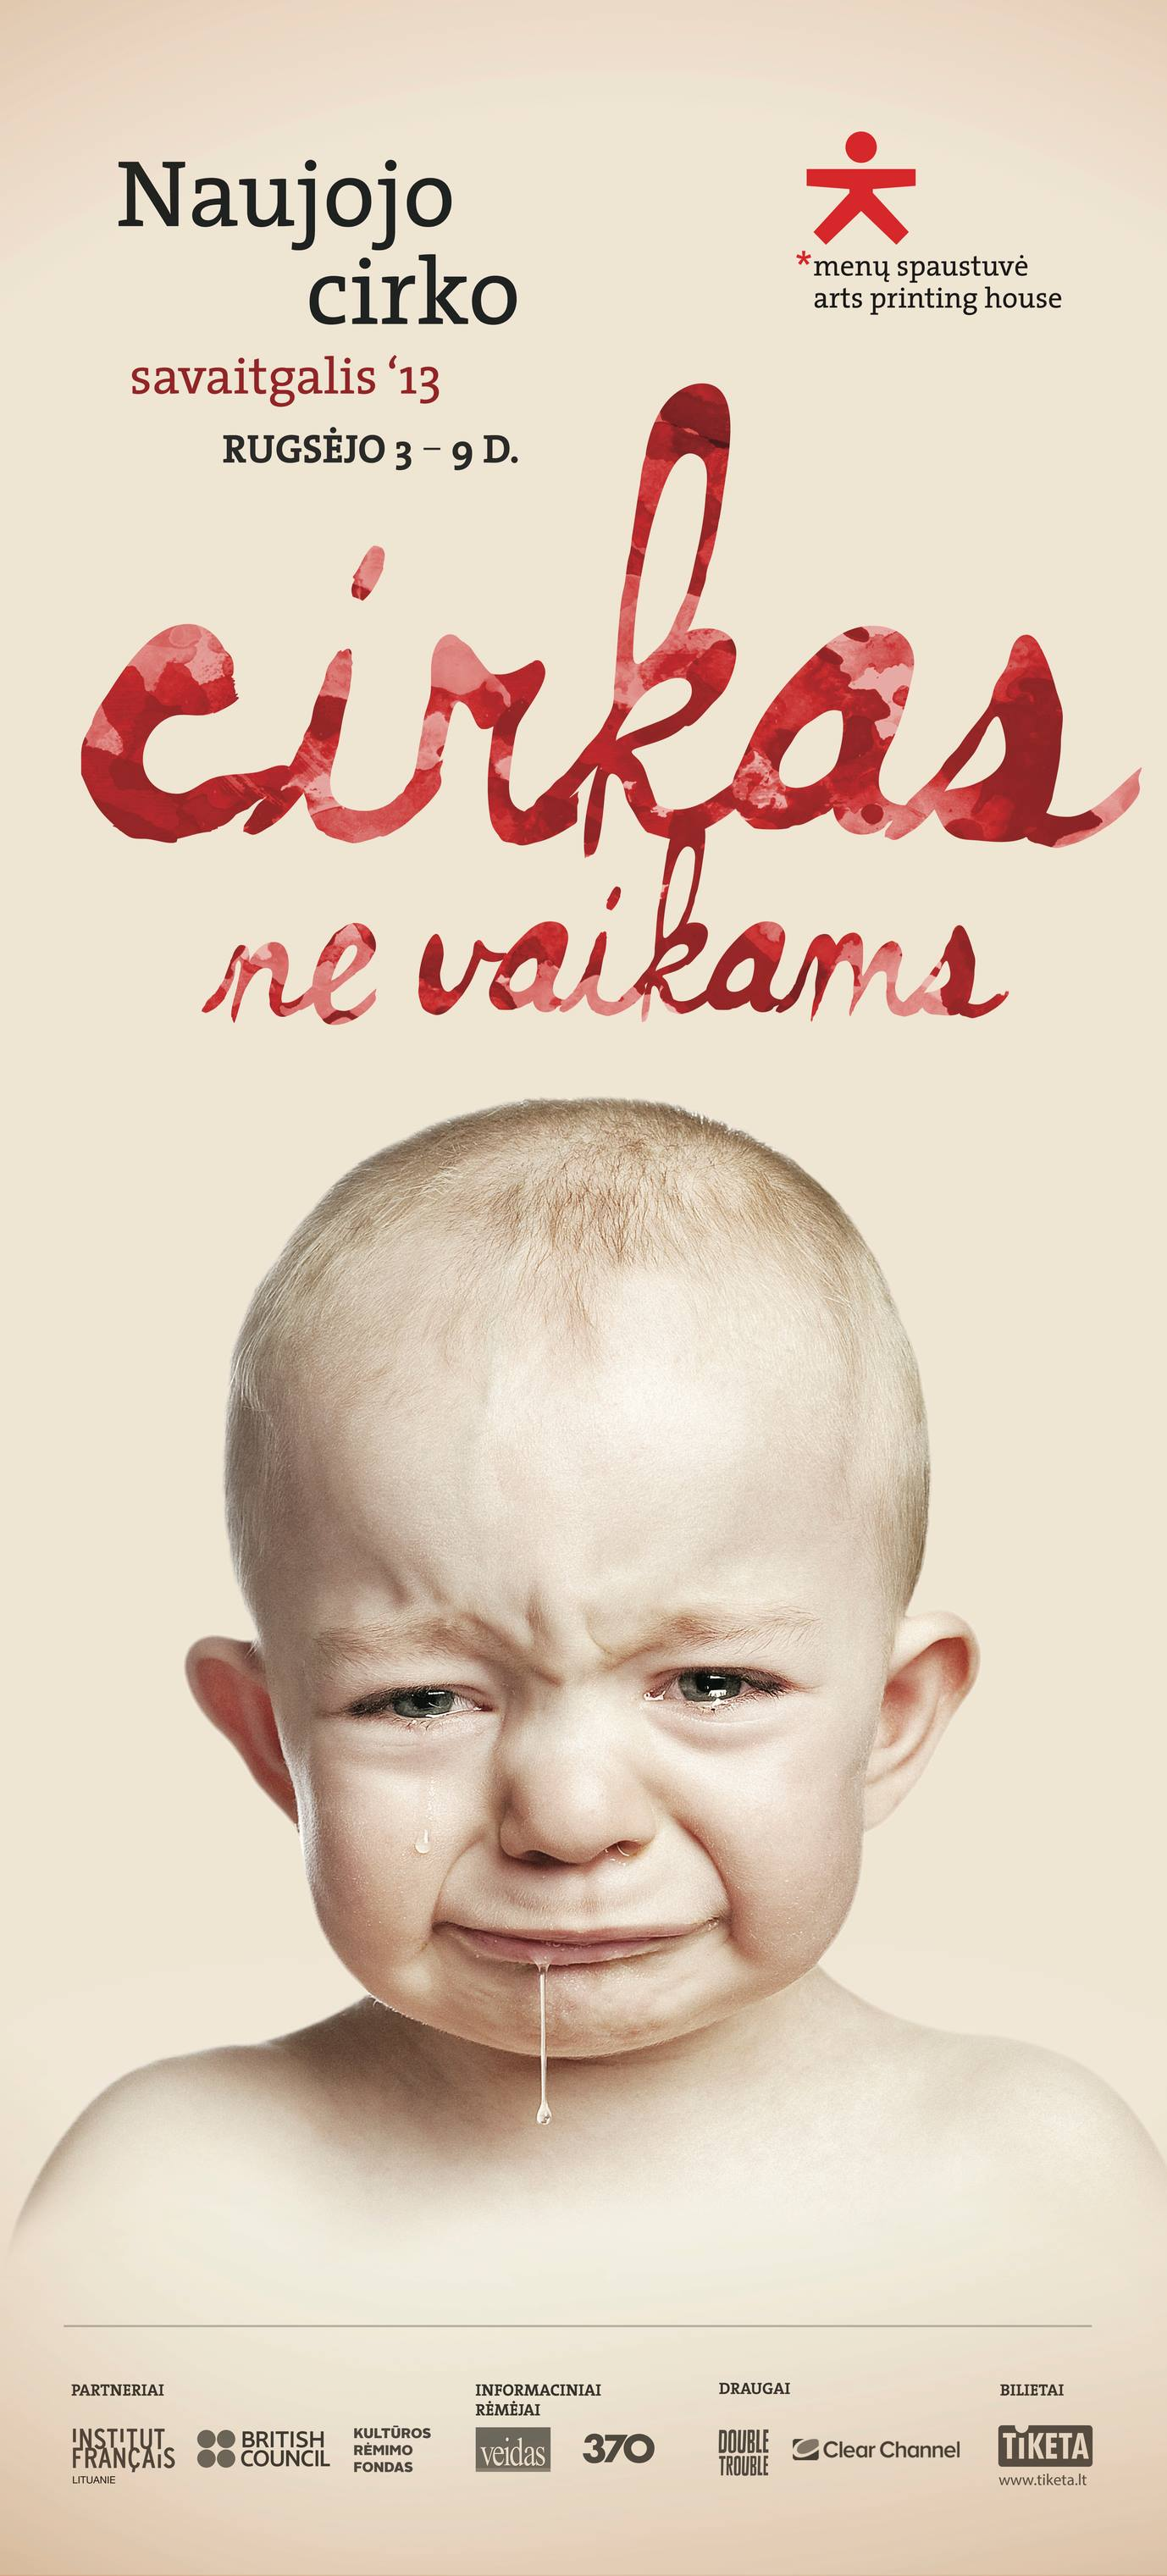 New Circus Weekend in Vilnius - Circus is not for children!